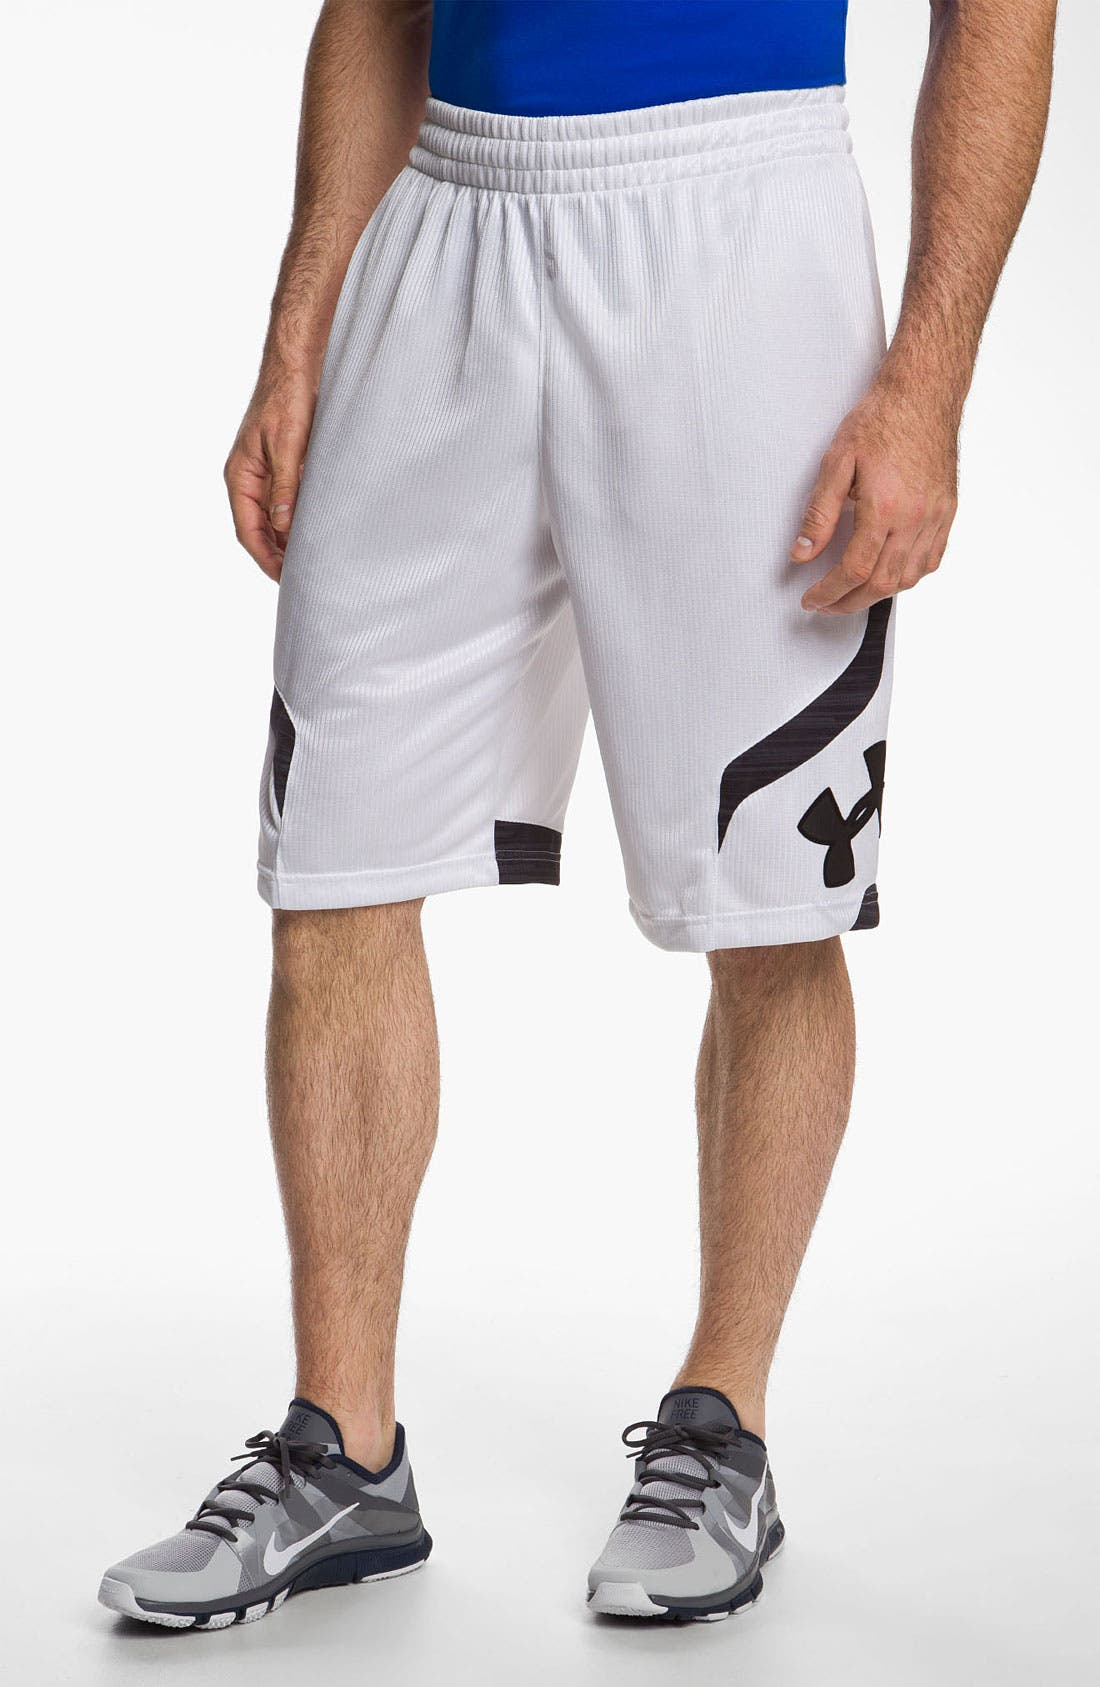 Main Image - Under Armour 'Valkyrie' Shorts (Online Only)